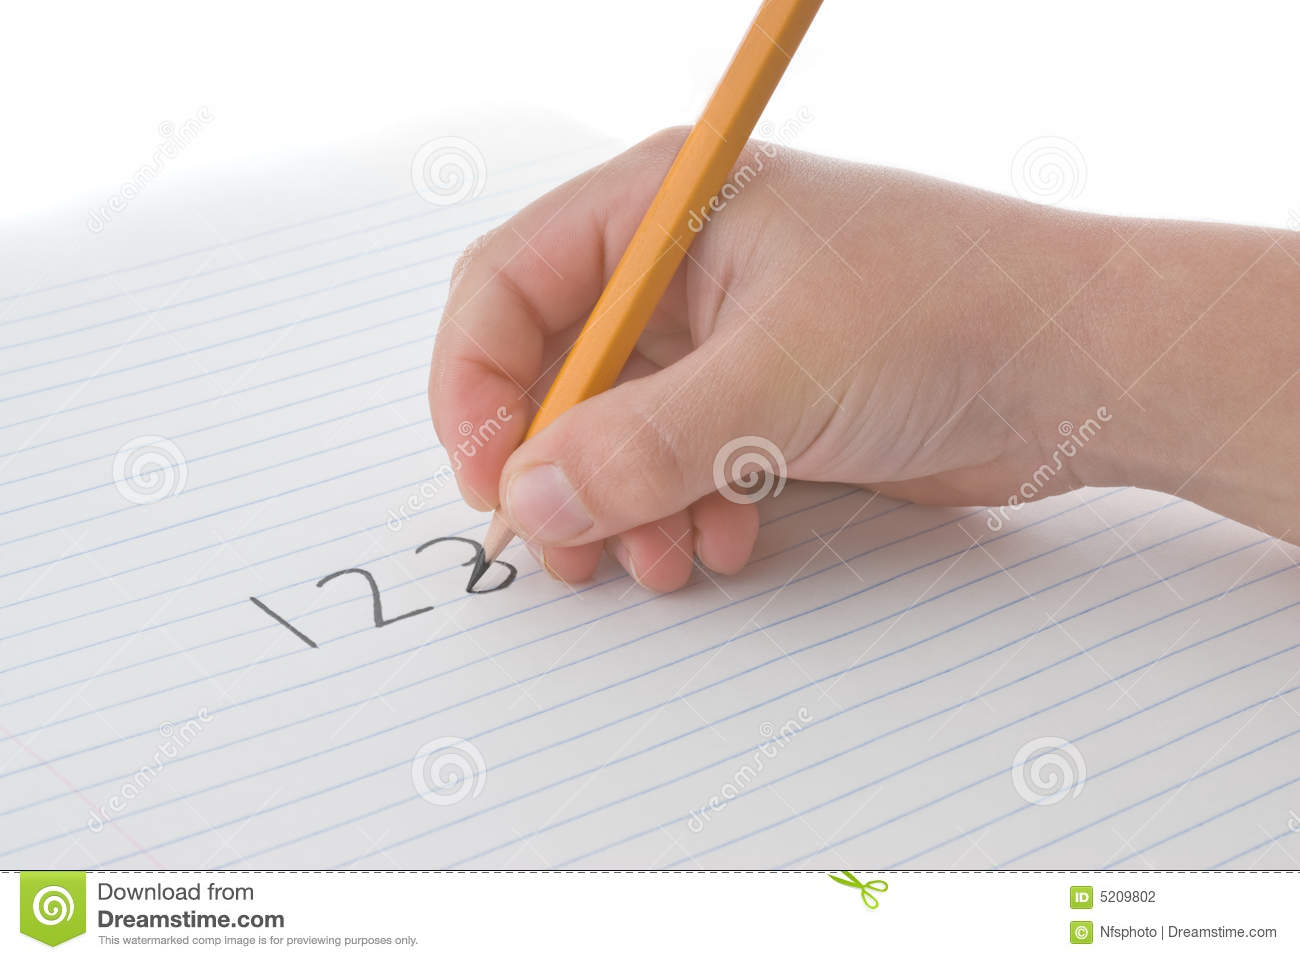 child's hand holding pencil, writing numbers on paper stock photo